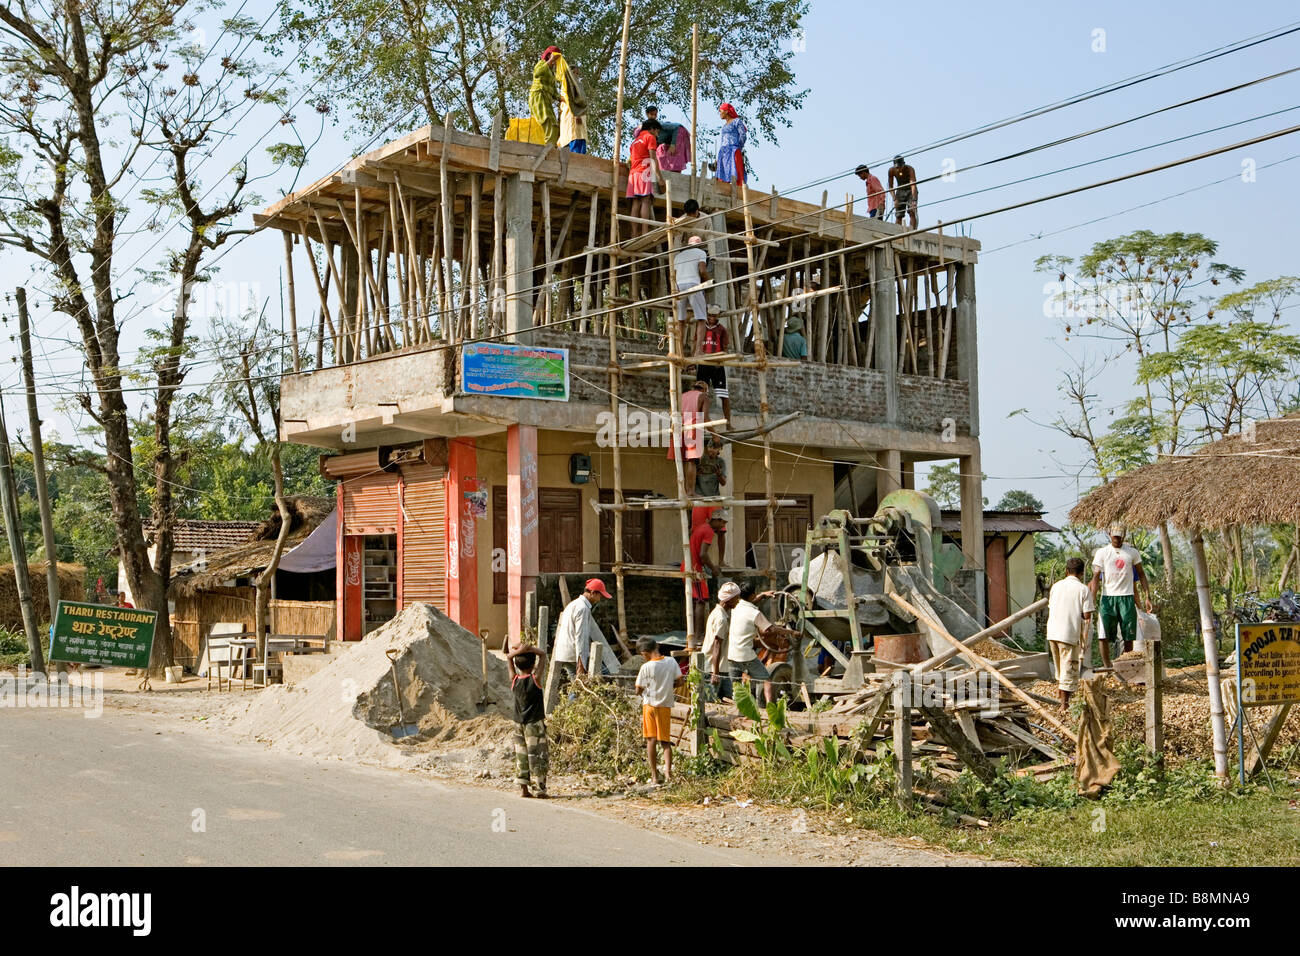 Building a house in sauraha village royal chitwan national park nepal